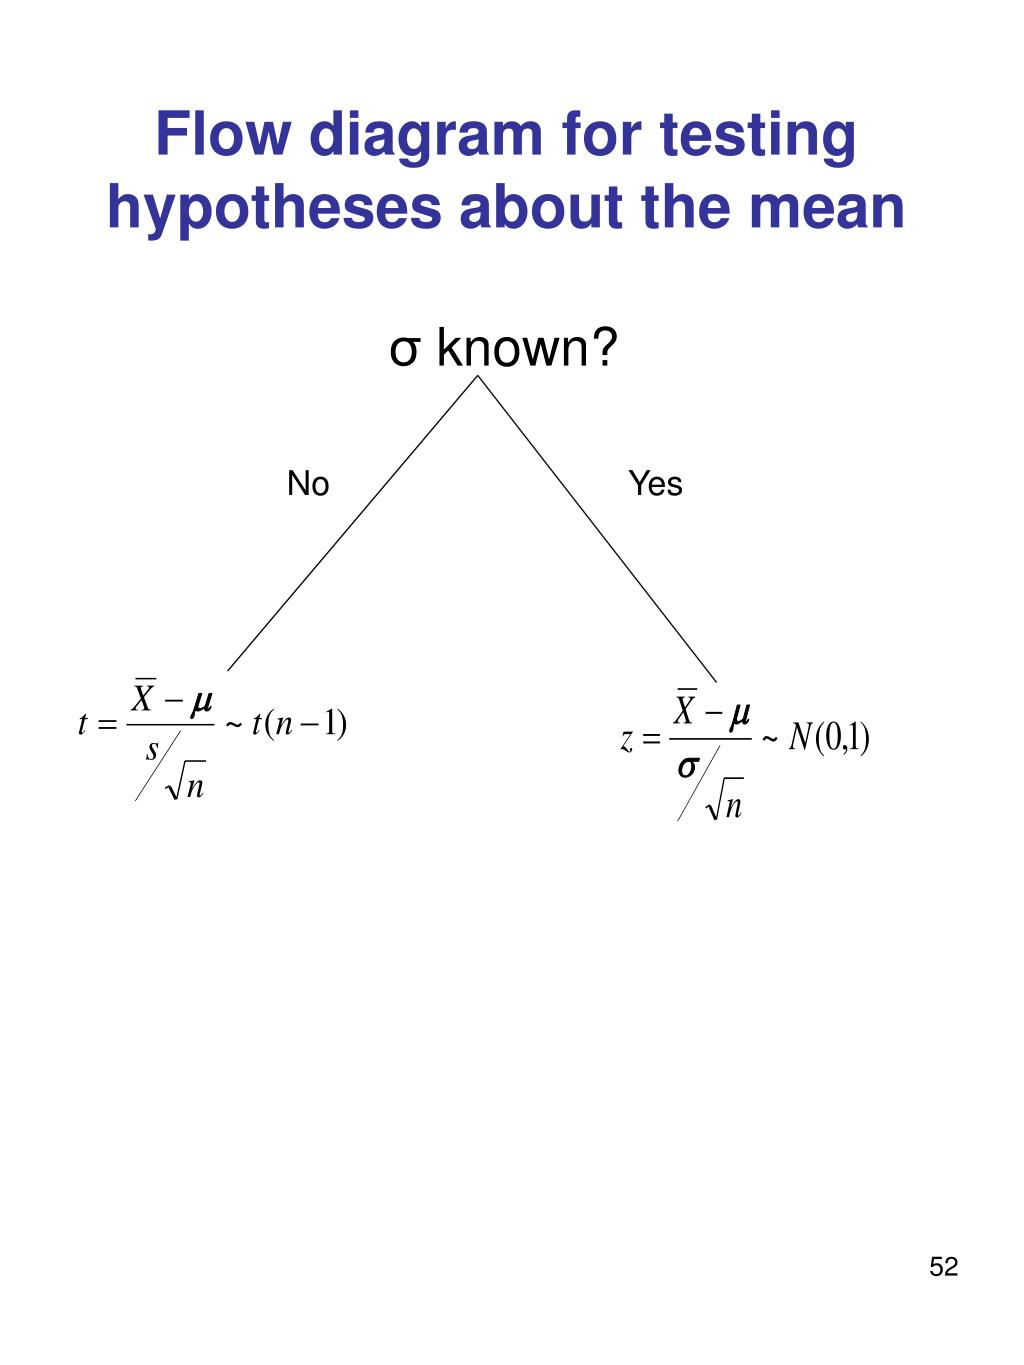 Flow diagram for testing hypotheses about the mean